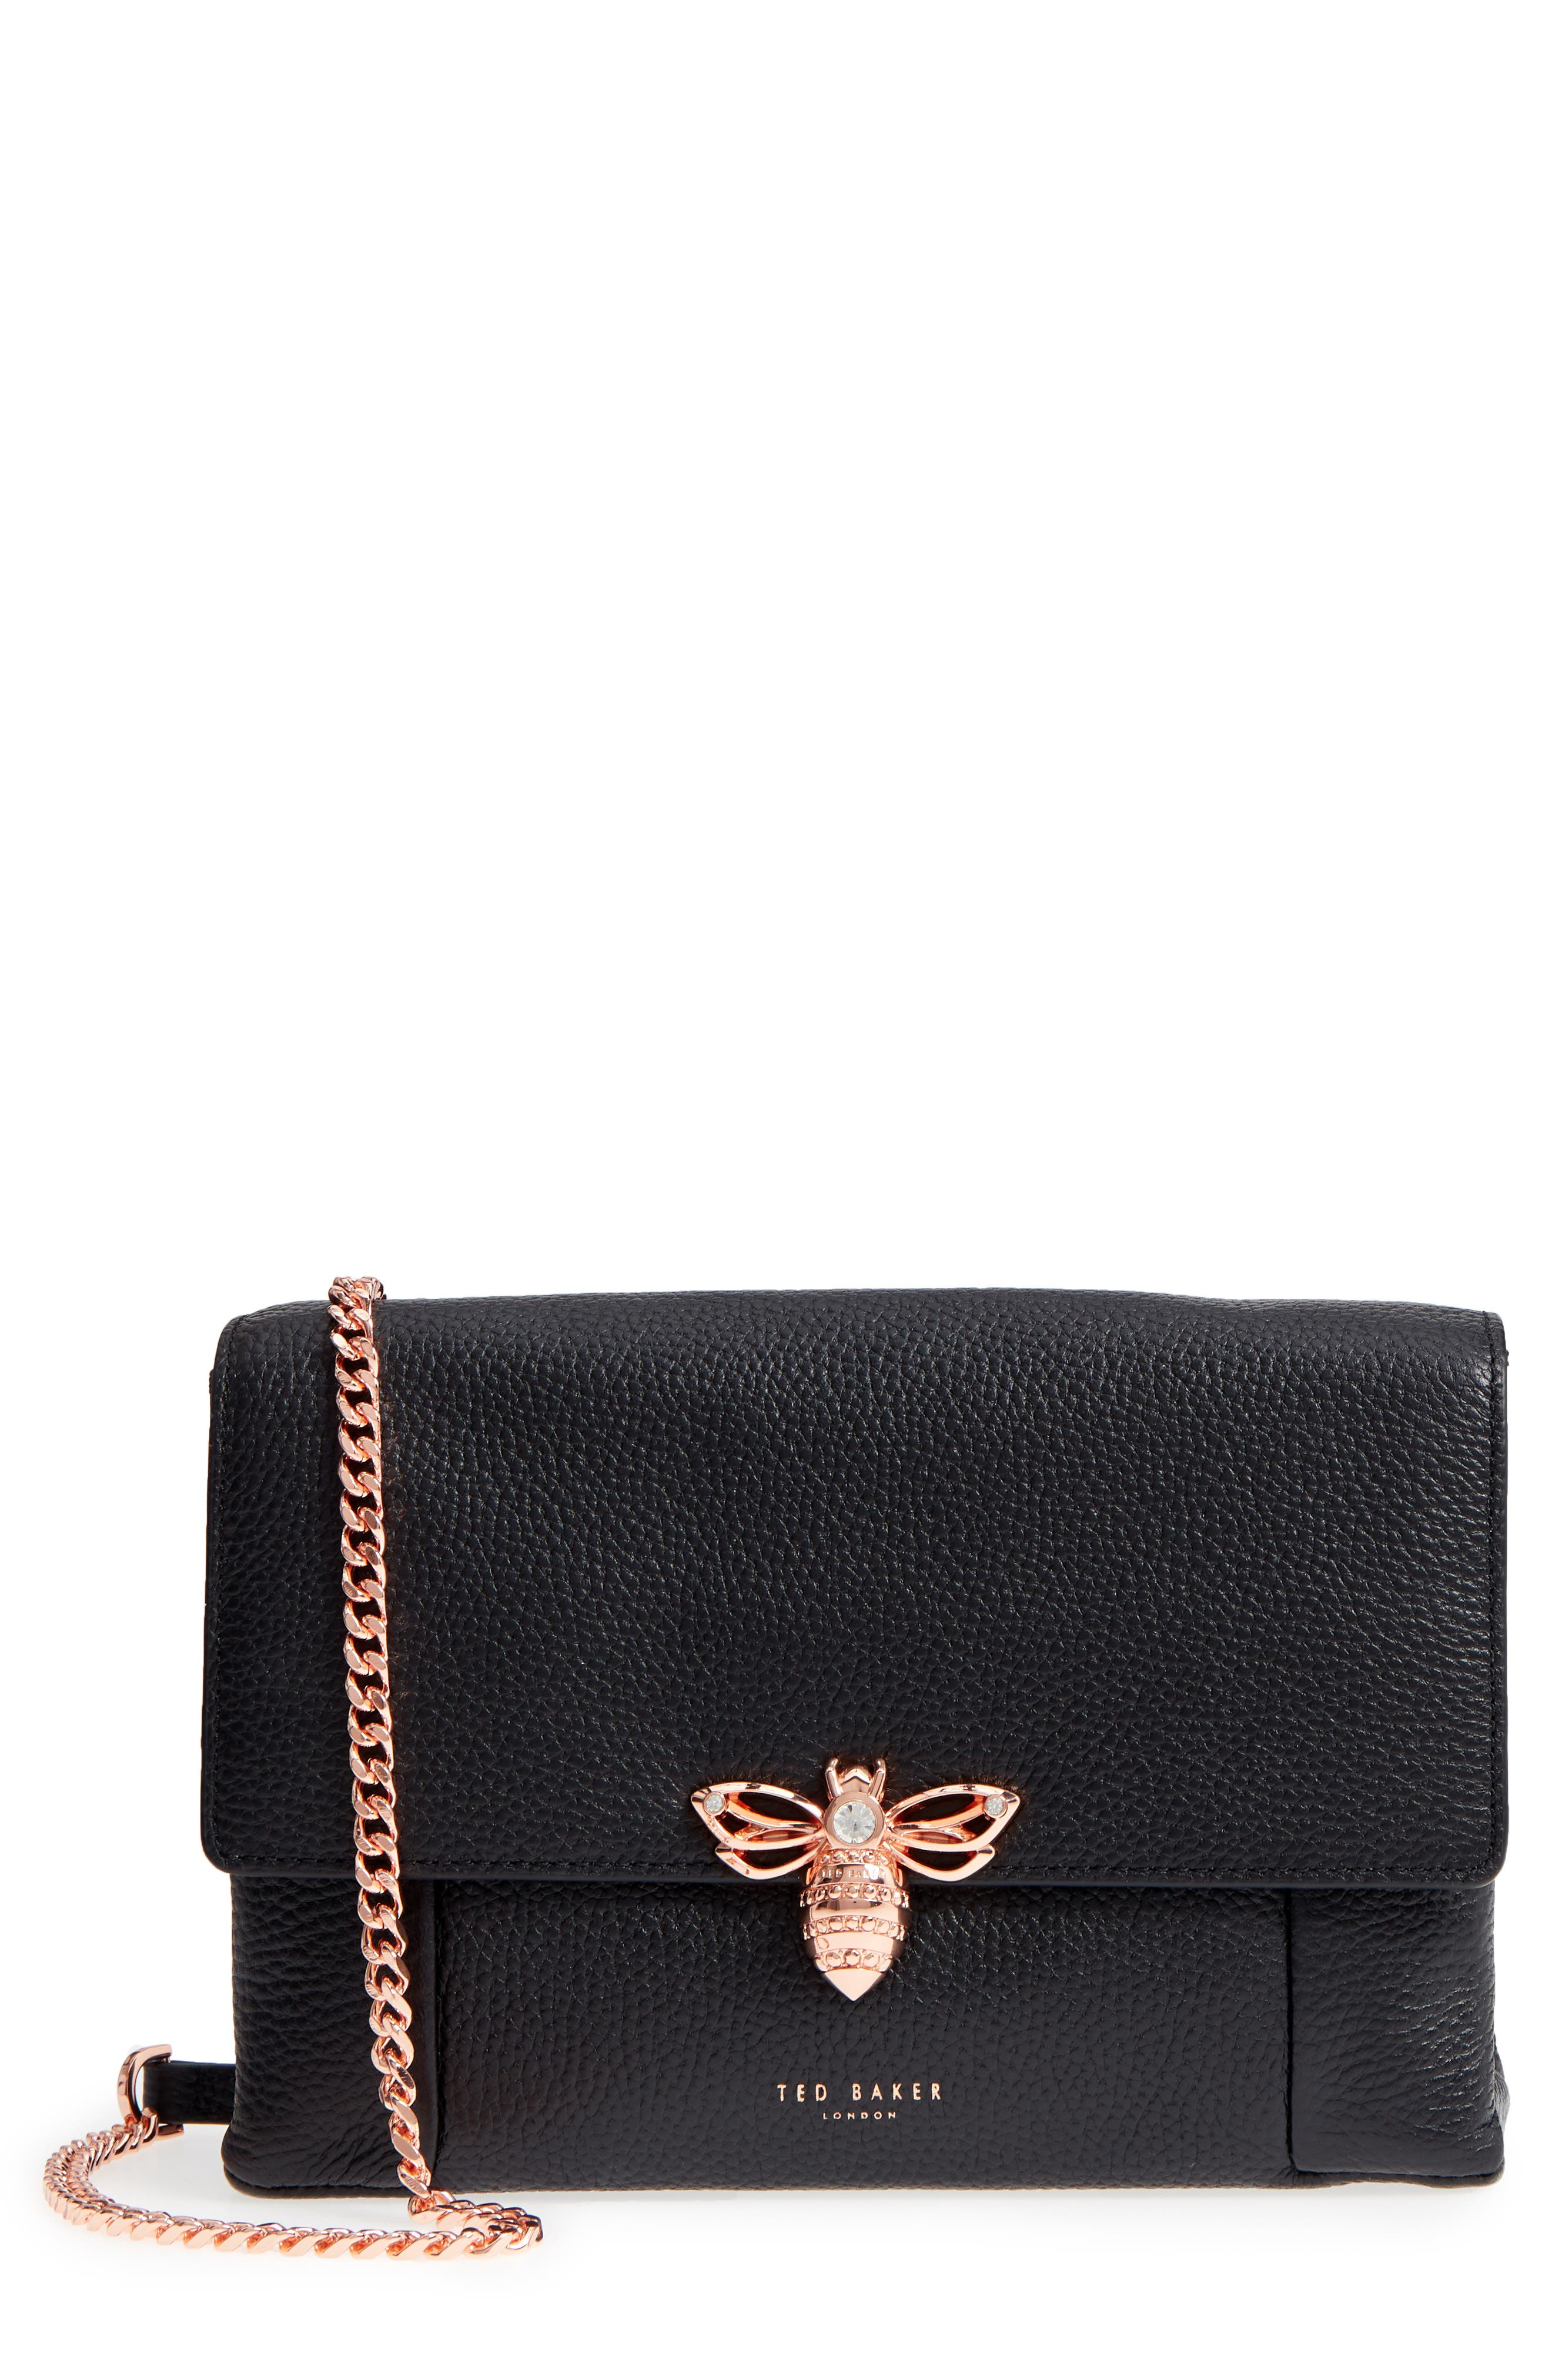 Zzlee Bee Embellished Crossbody Bag,                             Main thumbnail 1, color,                             Black